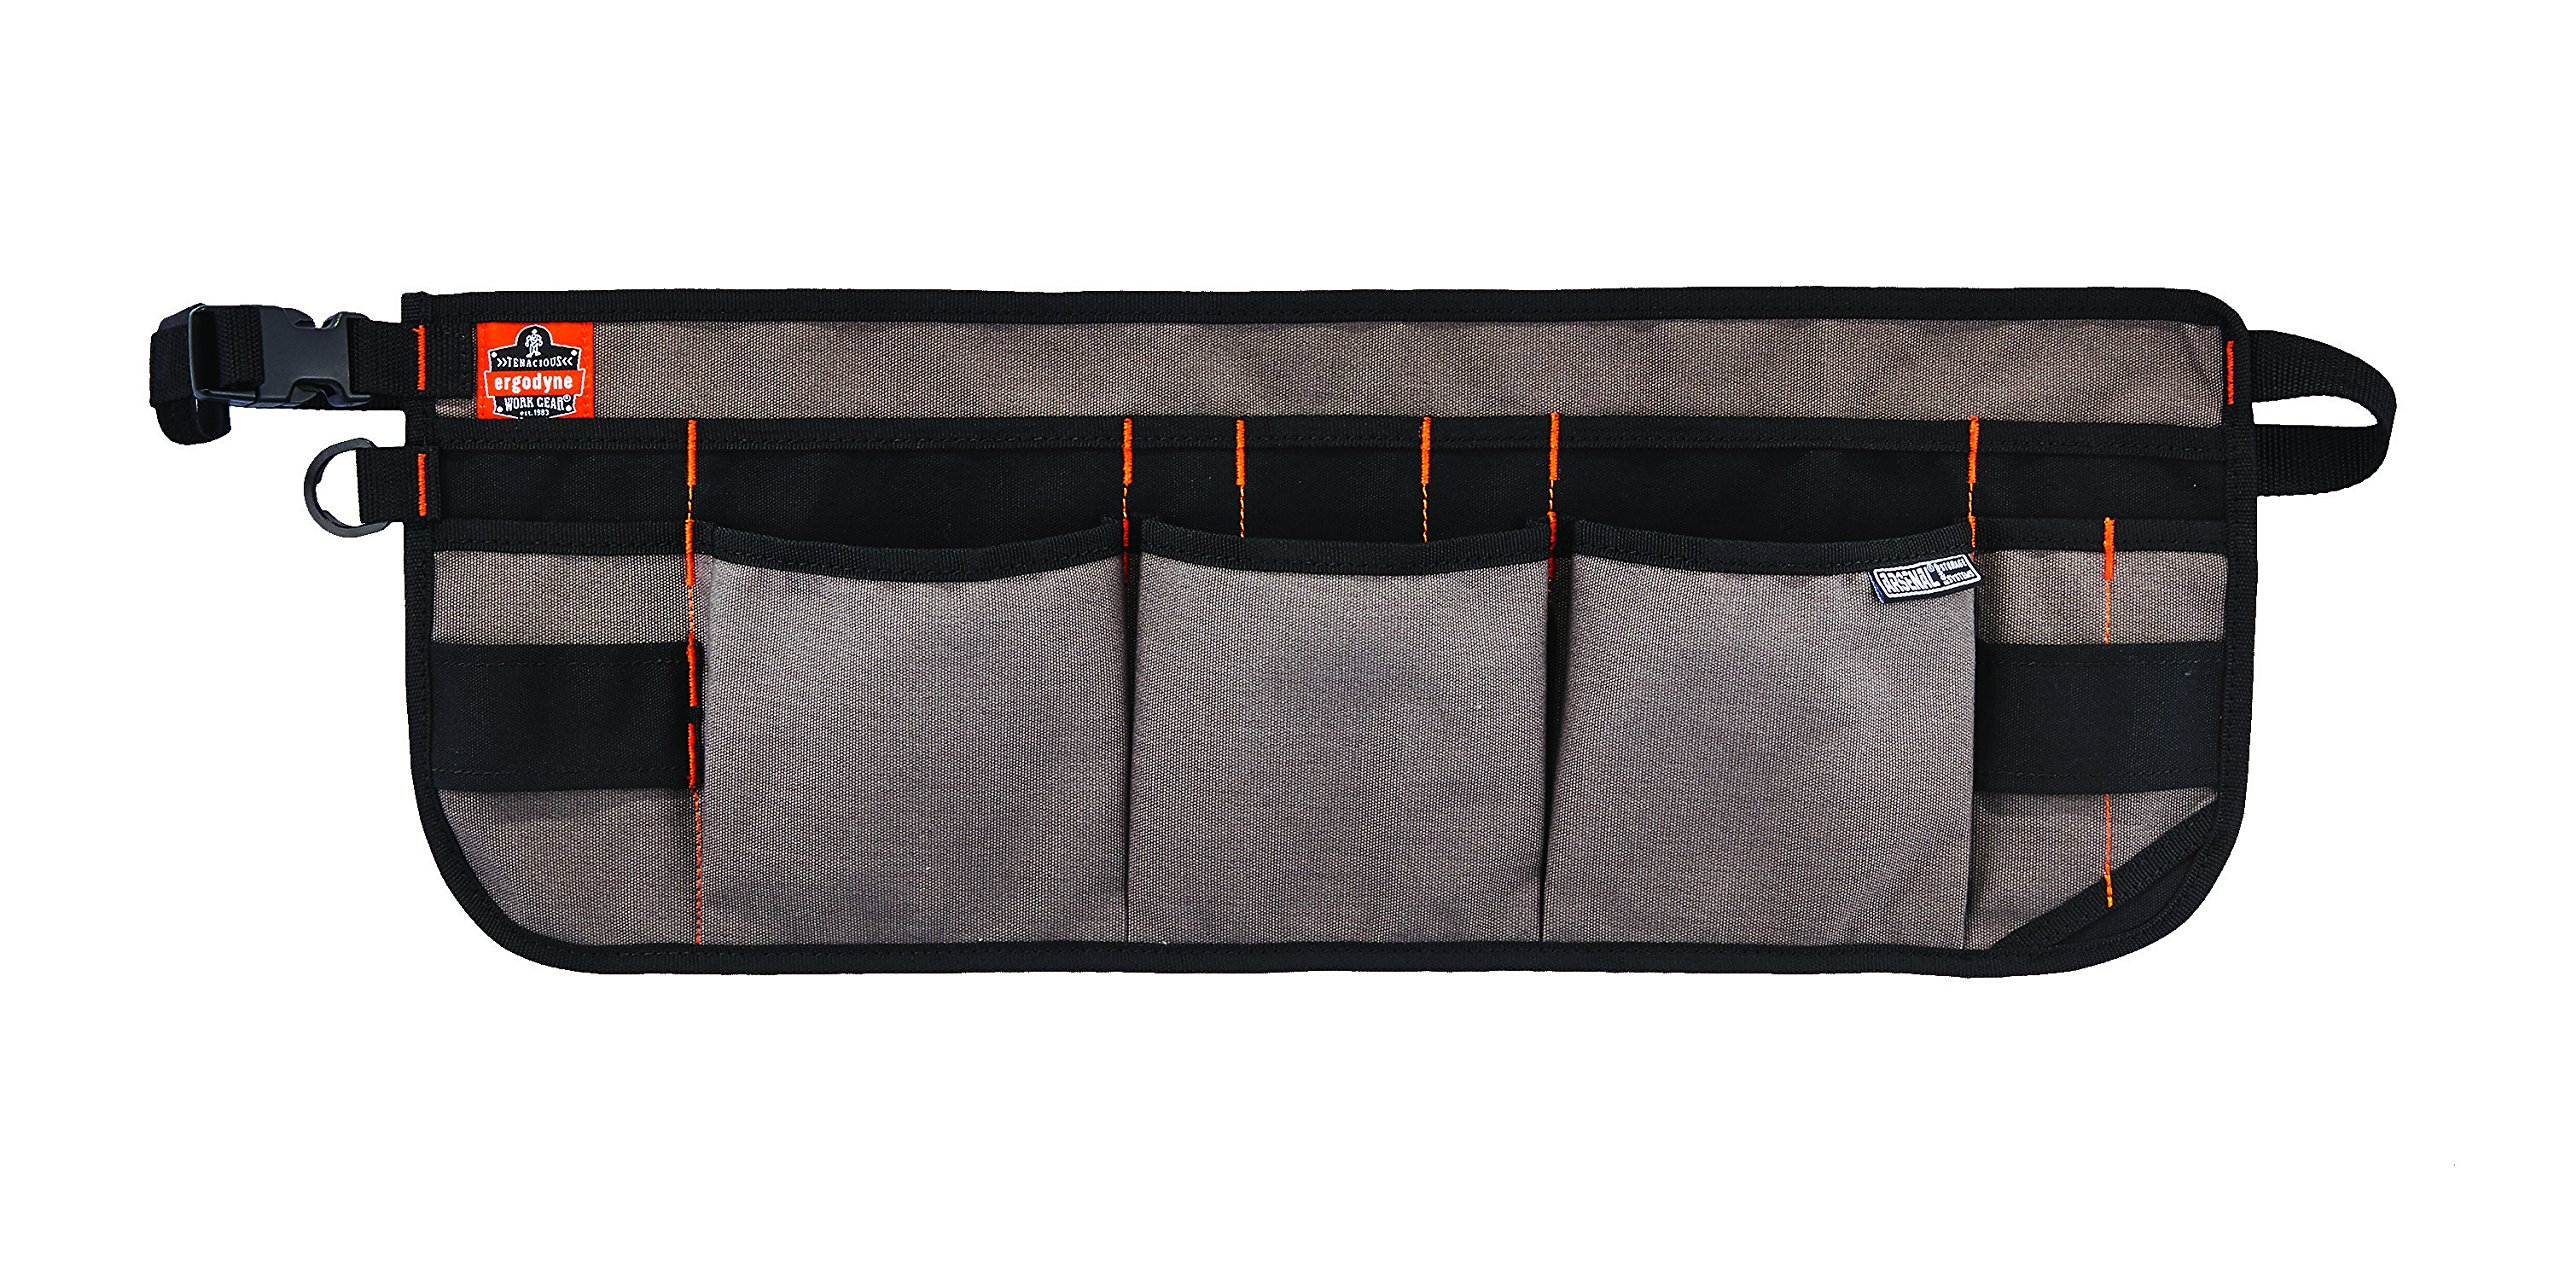 Ergodyne Arsenal 5707 Tool Work Waist Apron, 14-Pockets, Gray